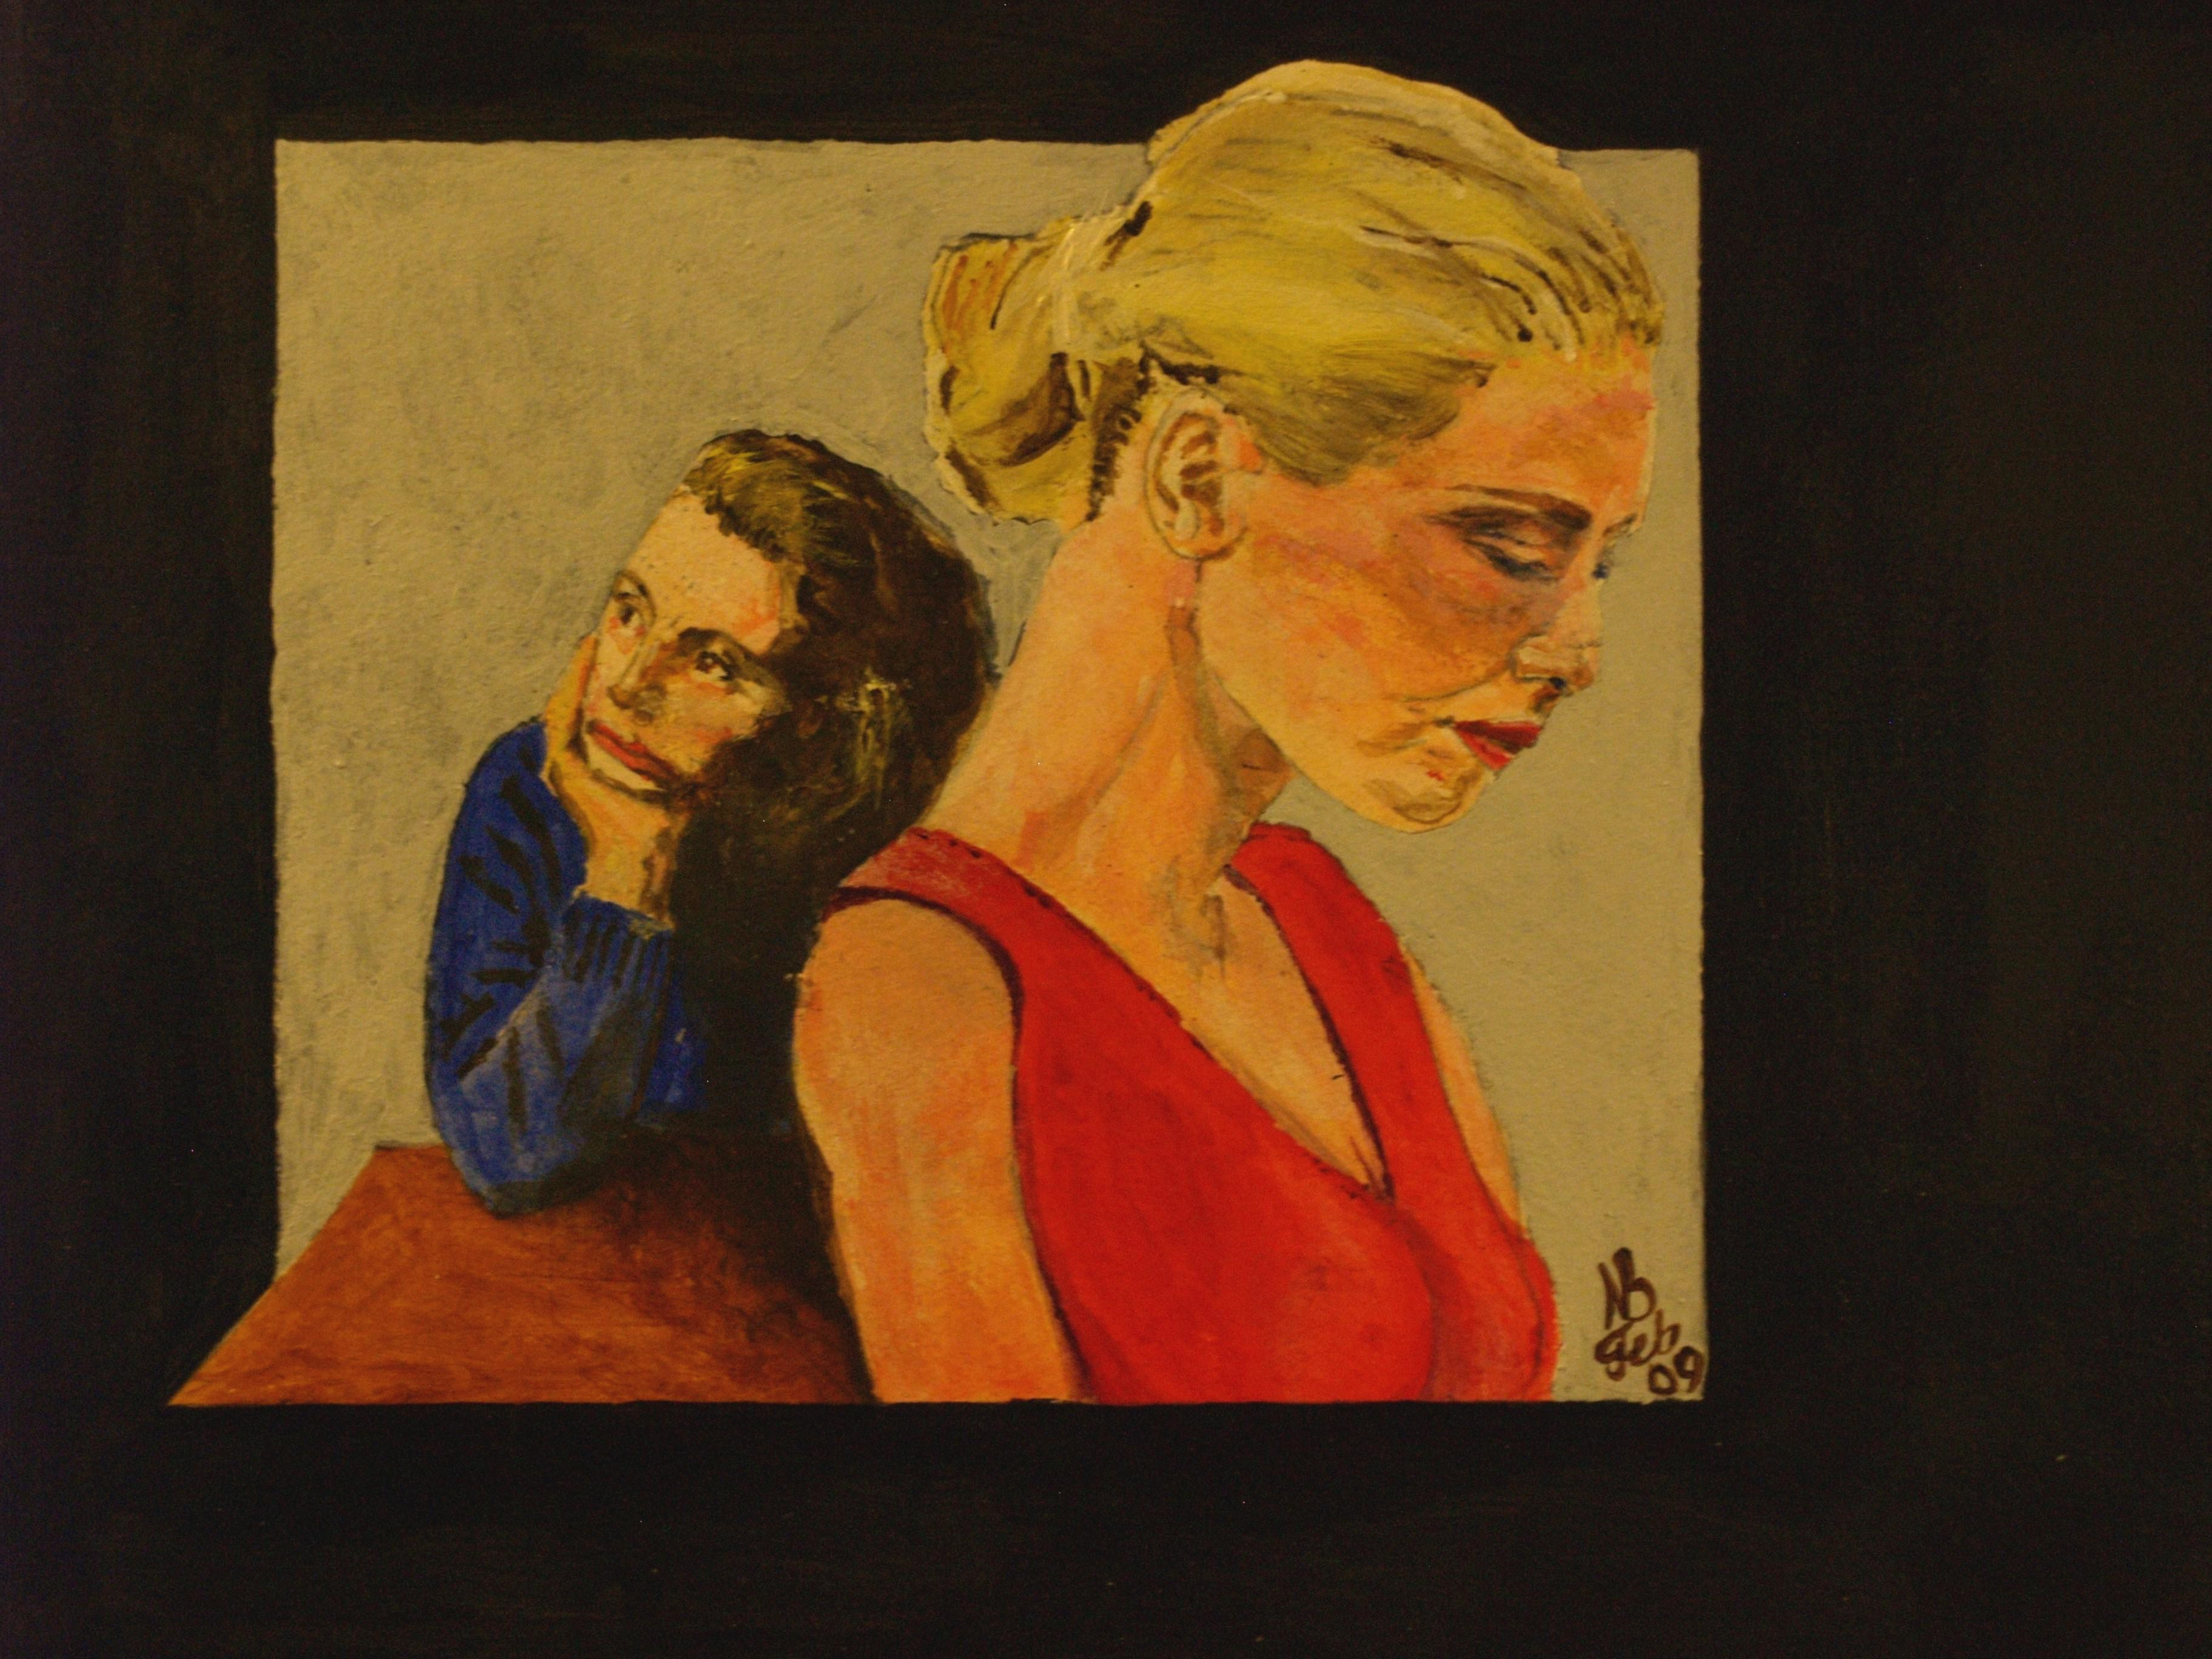 2009 Claudia & Yvonne Water colour on paper 42 x 21cm